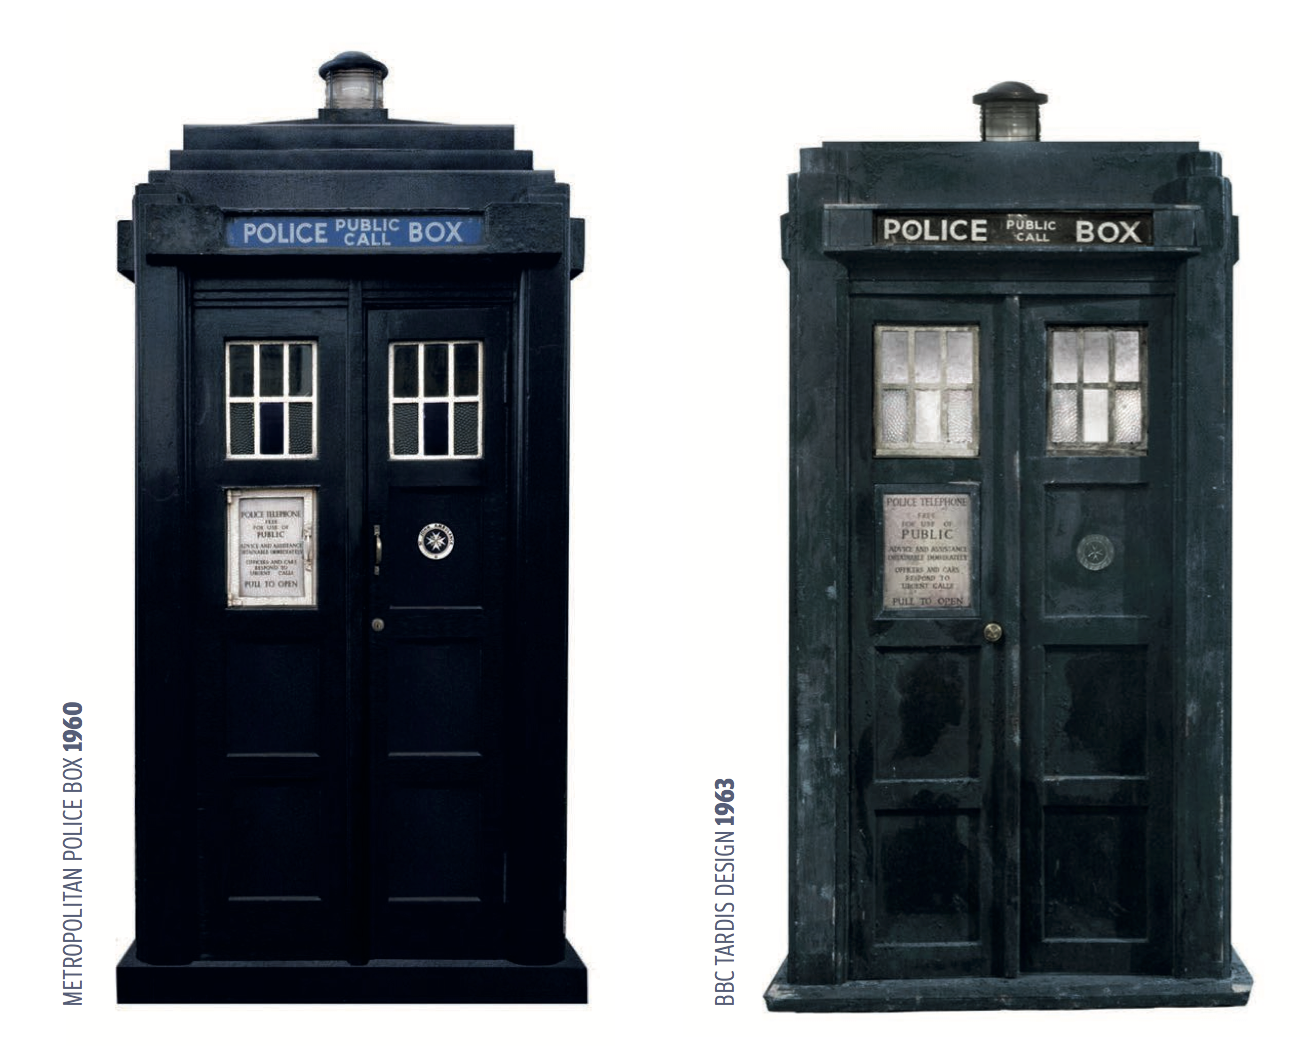 Reference images of preferred classic police box designs.